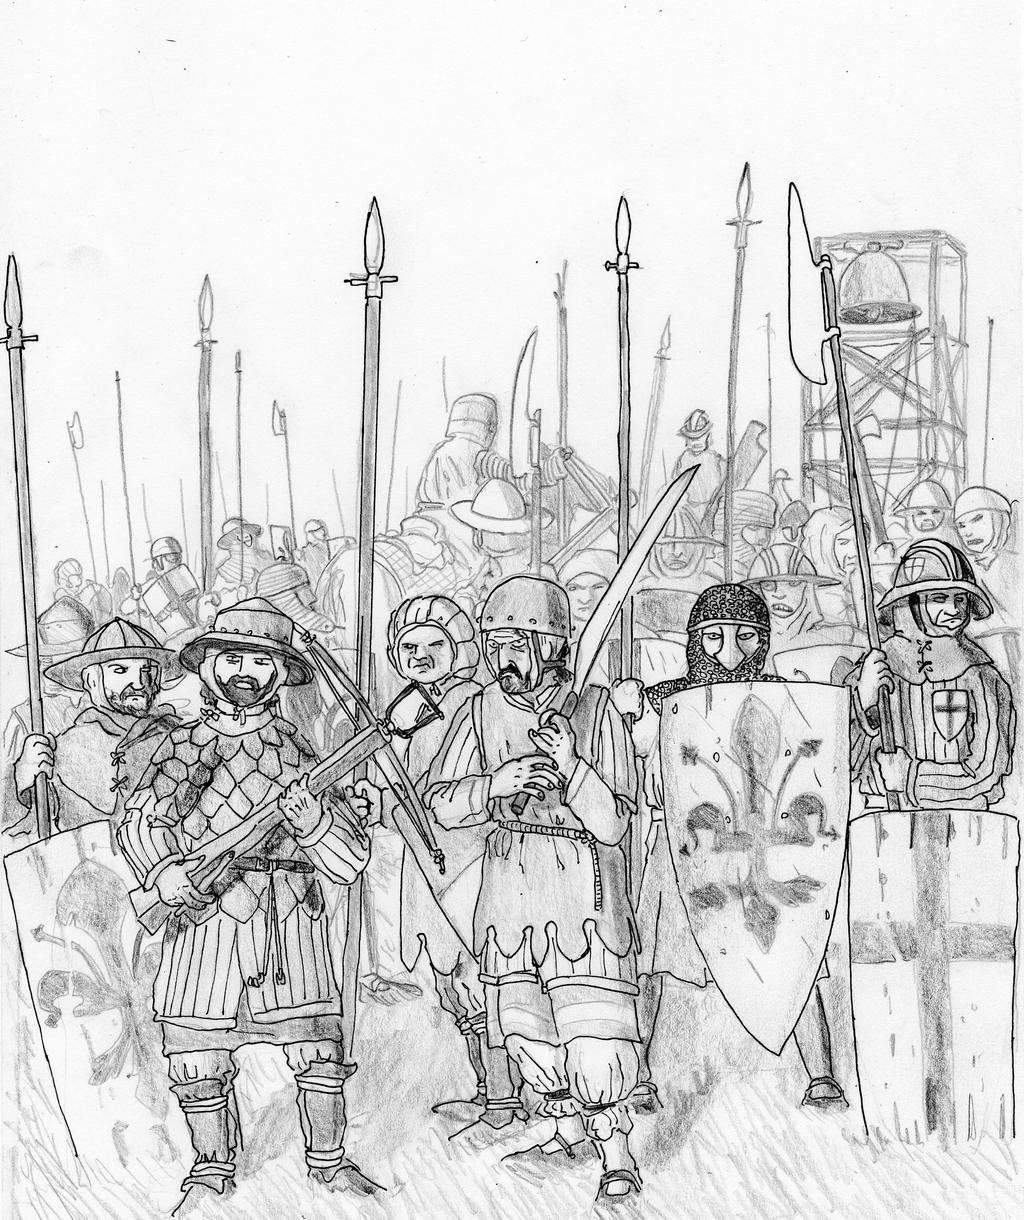 Guelphs' Last Stand at Montaperti, 1260 AD by FritzVicari ...